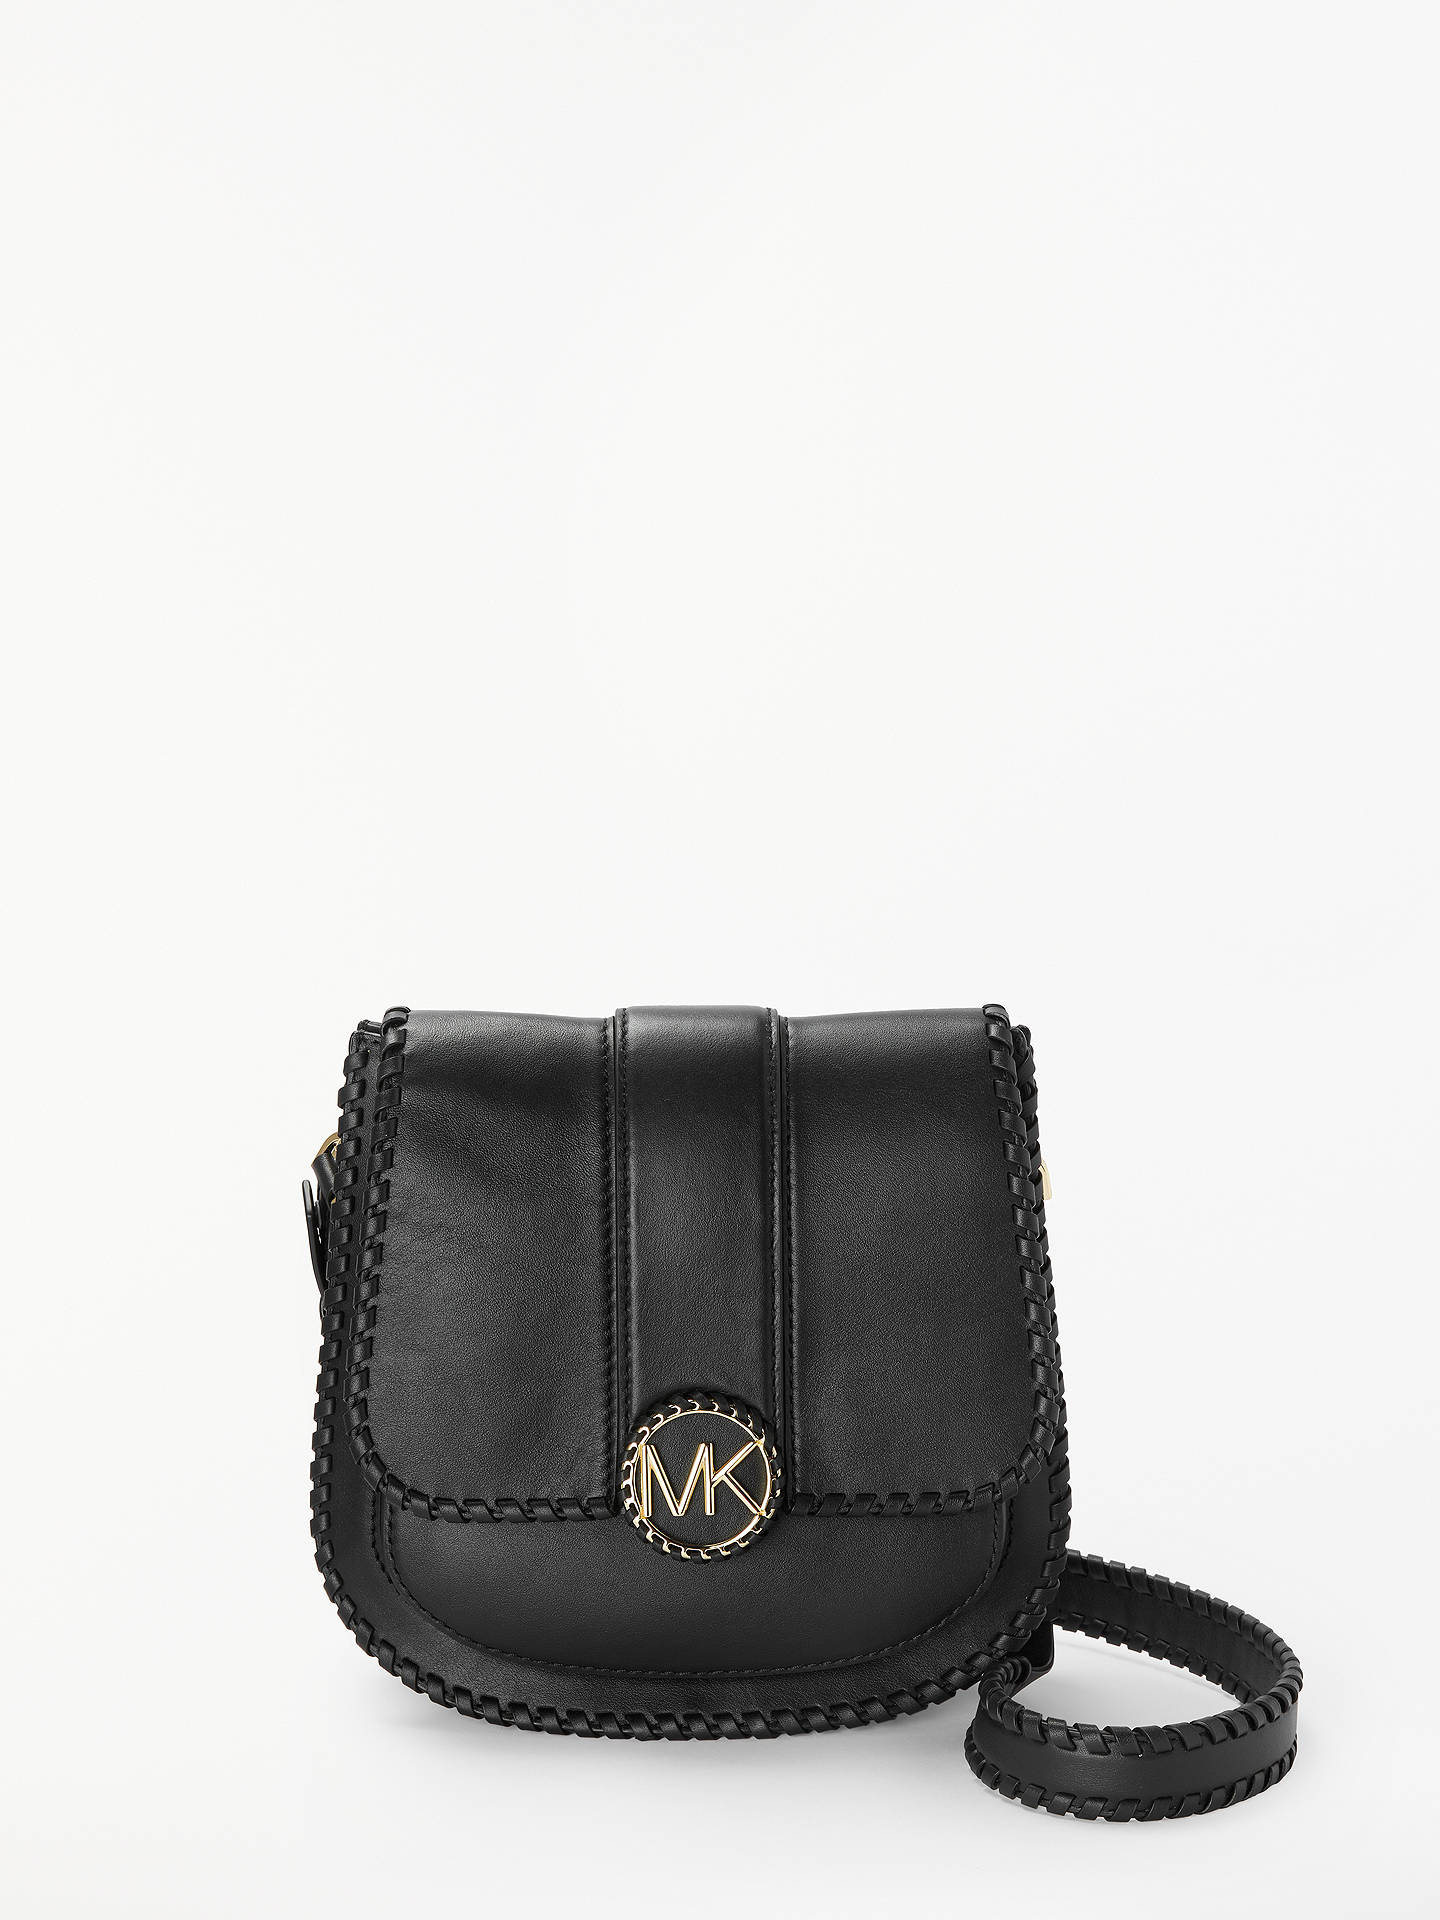 80cacb9fe270 MICHAEL Michael Kors Lillie Medium Leather Messenger Bag at John ...